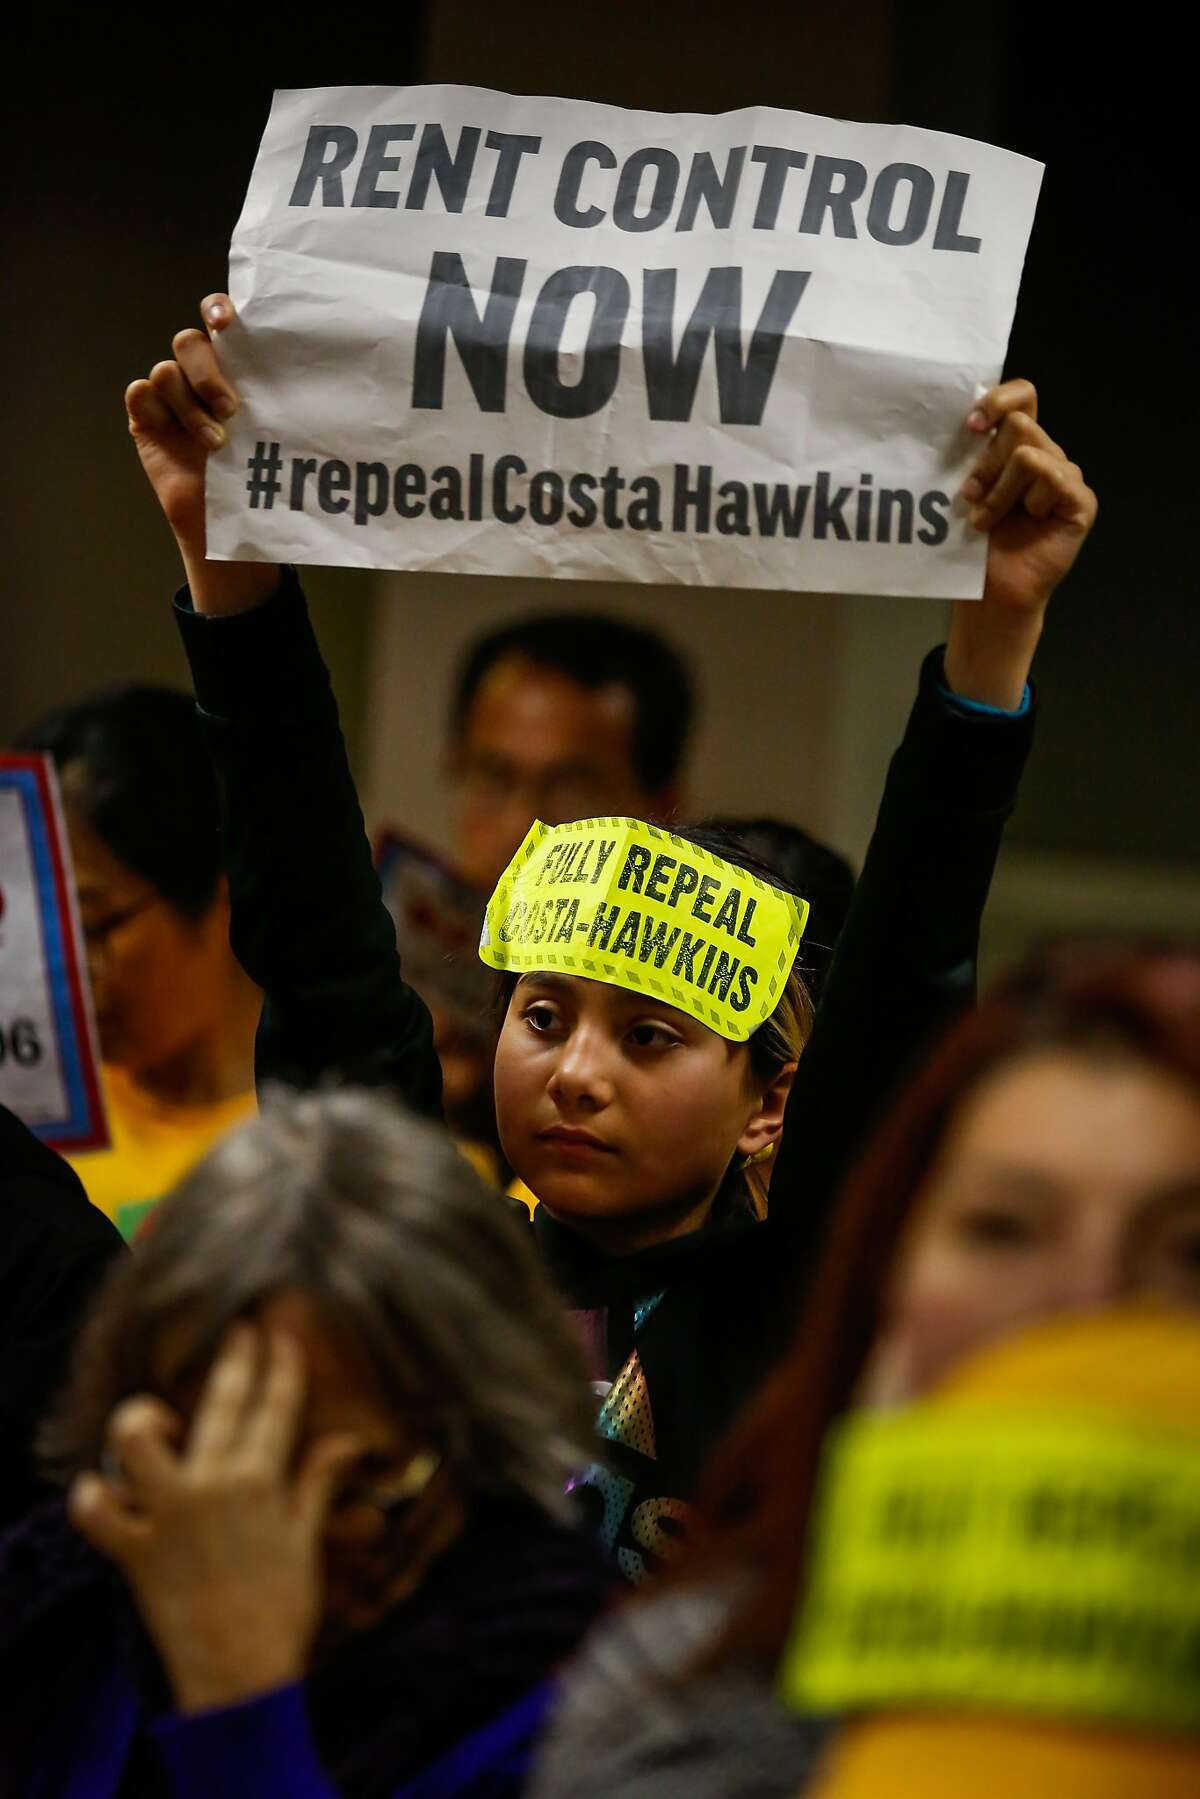 Aimee Navarro, 10, holds up a sign during the public comment portion of a hearing on whether or not to repeal the Costa-Hawkins Rental Housing Act at the State Capital in Sacramento, Calif., on Thursday, Jan. 11, 2018. The Costa-Hawkins Rental Housing Act did not pass.